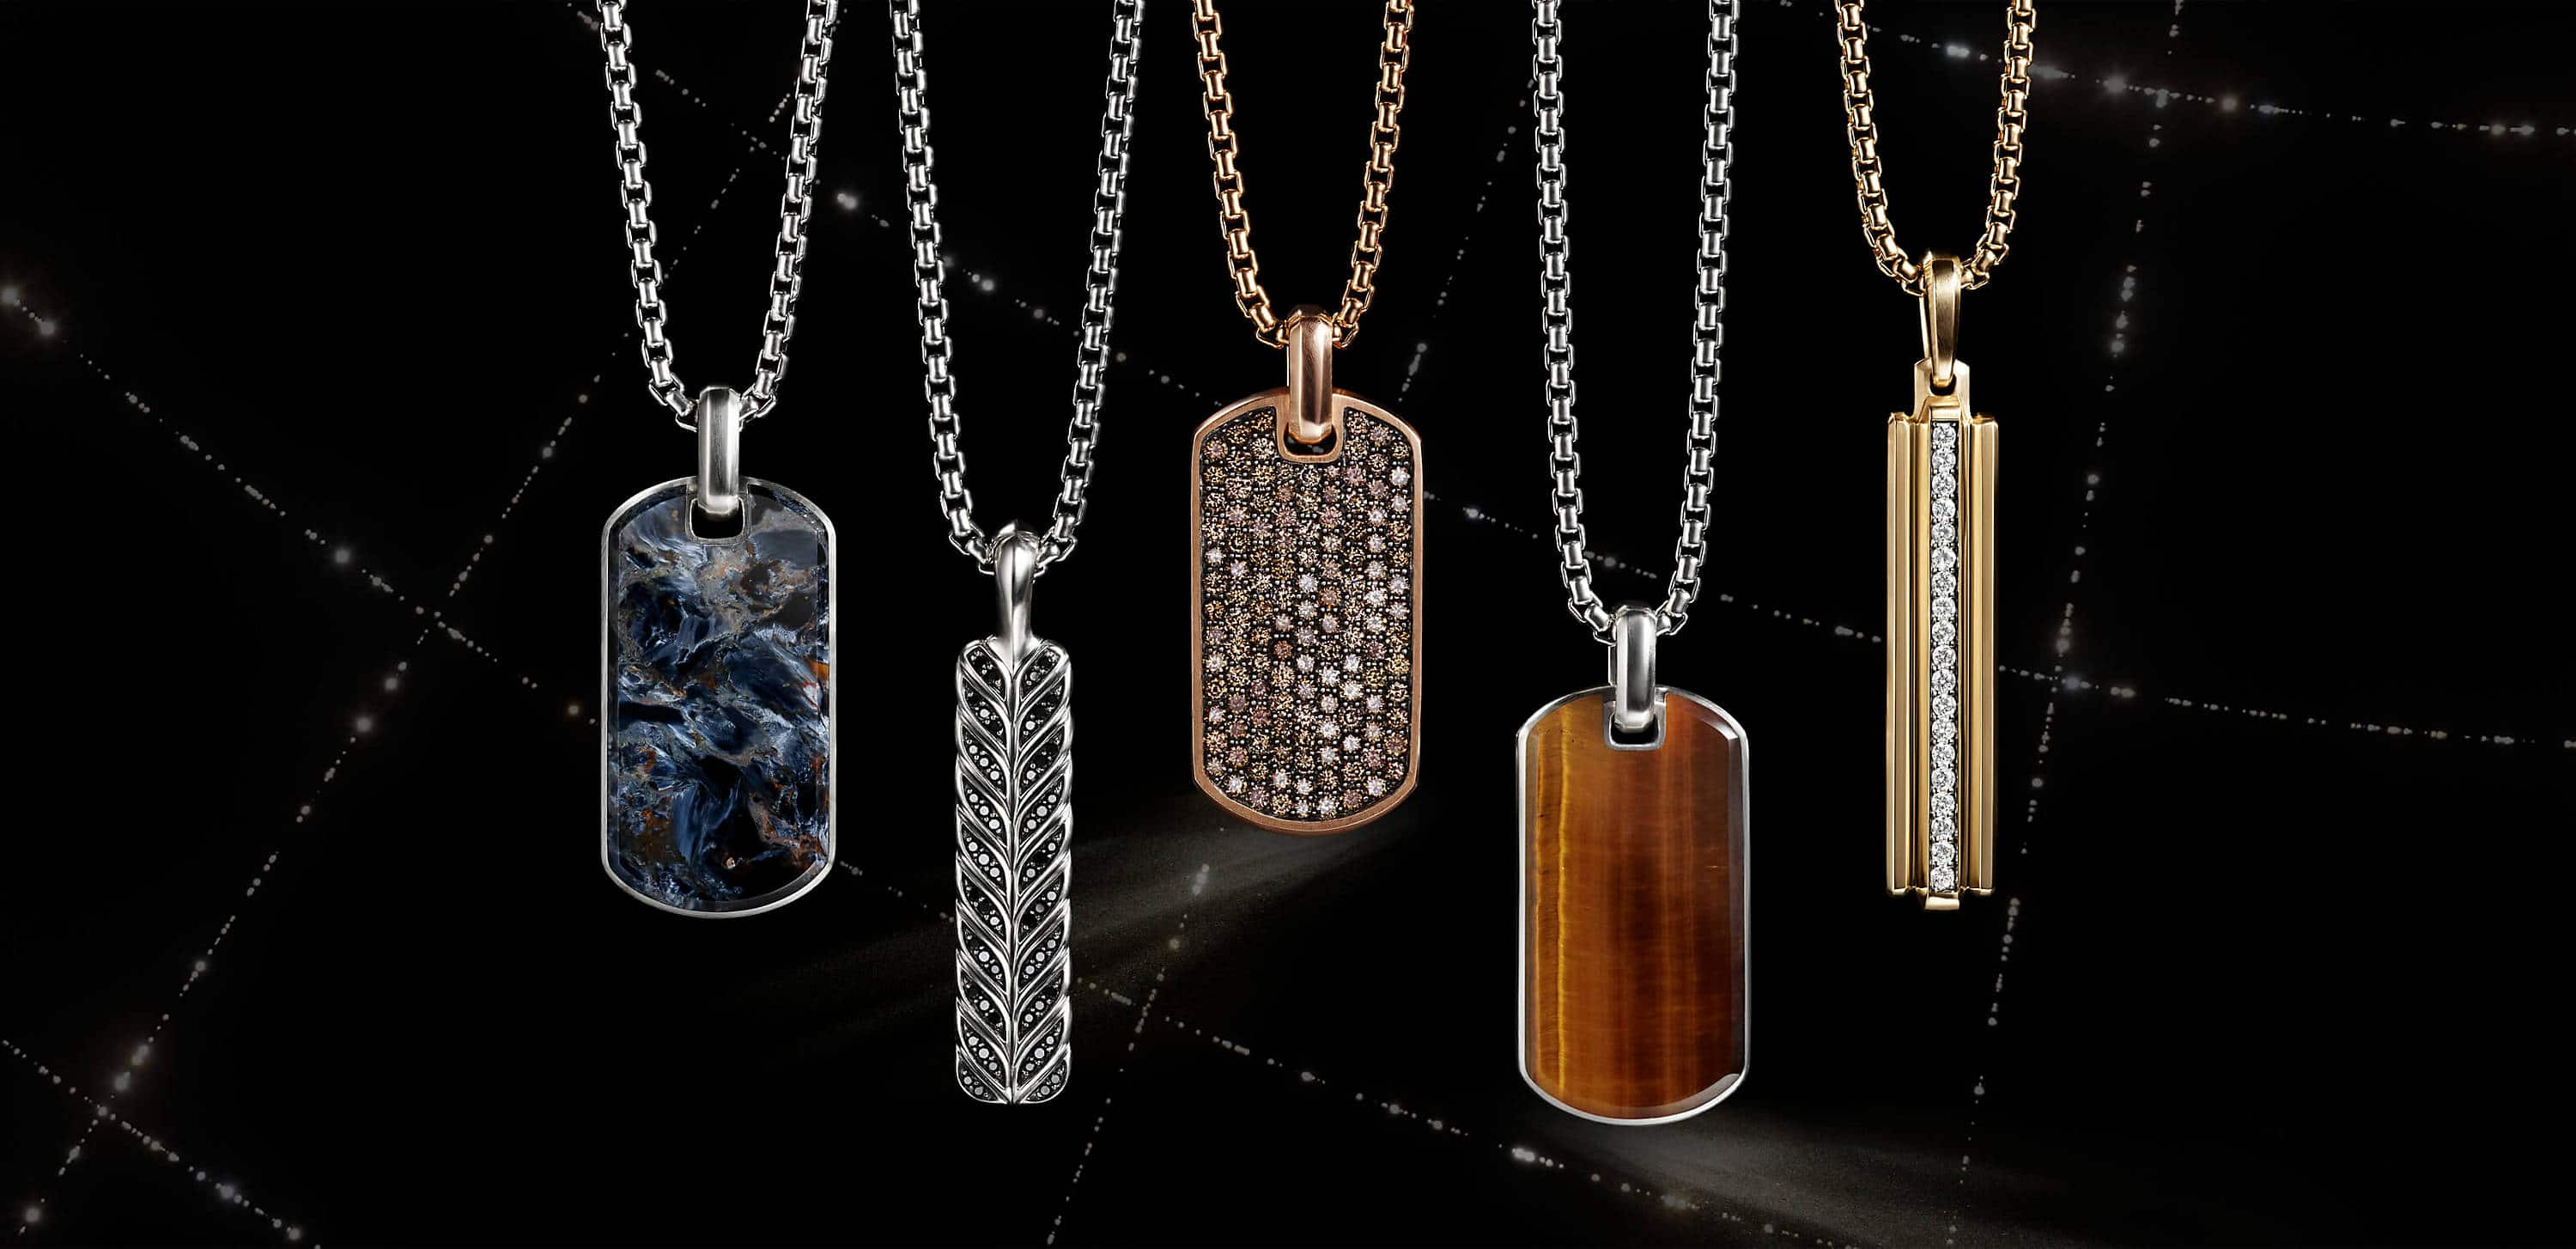 A  color photograph shows five David Yurman men's tags strung on box chains hanging in front of a black background with white latitude and longitude lines. Three of the tags are crafted from sterling silver with pietersite, black diamonds or tiger's eye. One tag is crafted from 18K rose gold with cognac diamonds. The final tag is crafted from 18K yellow gold with white diamonds.